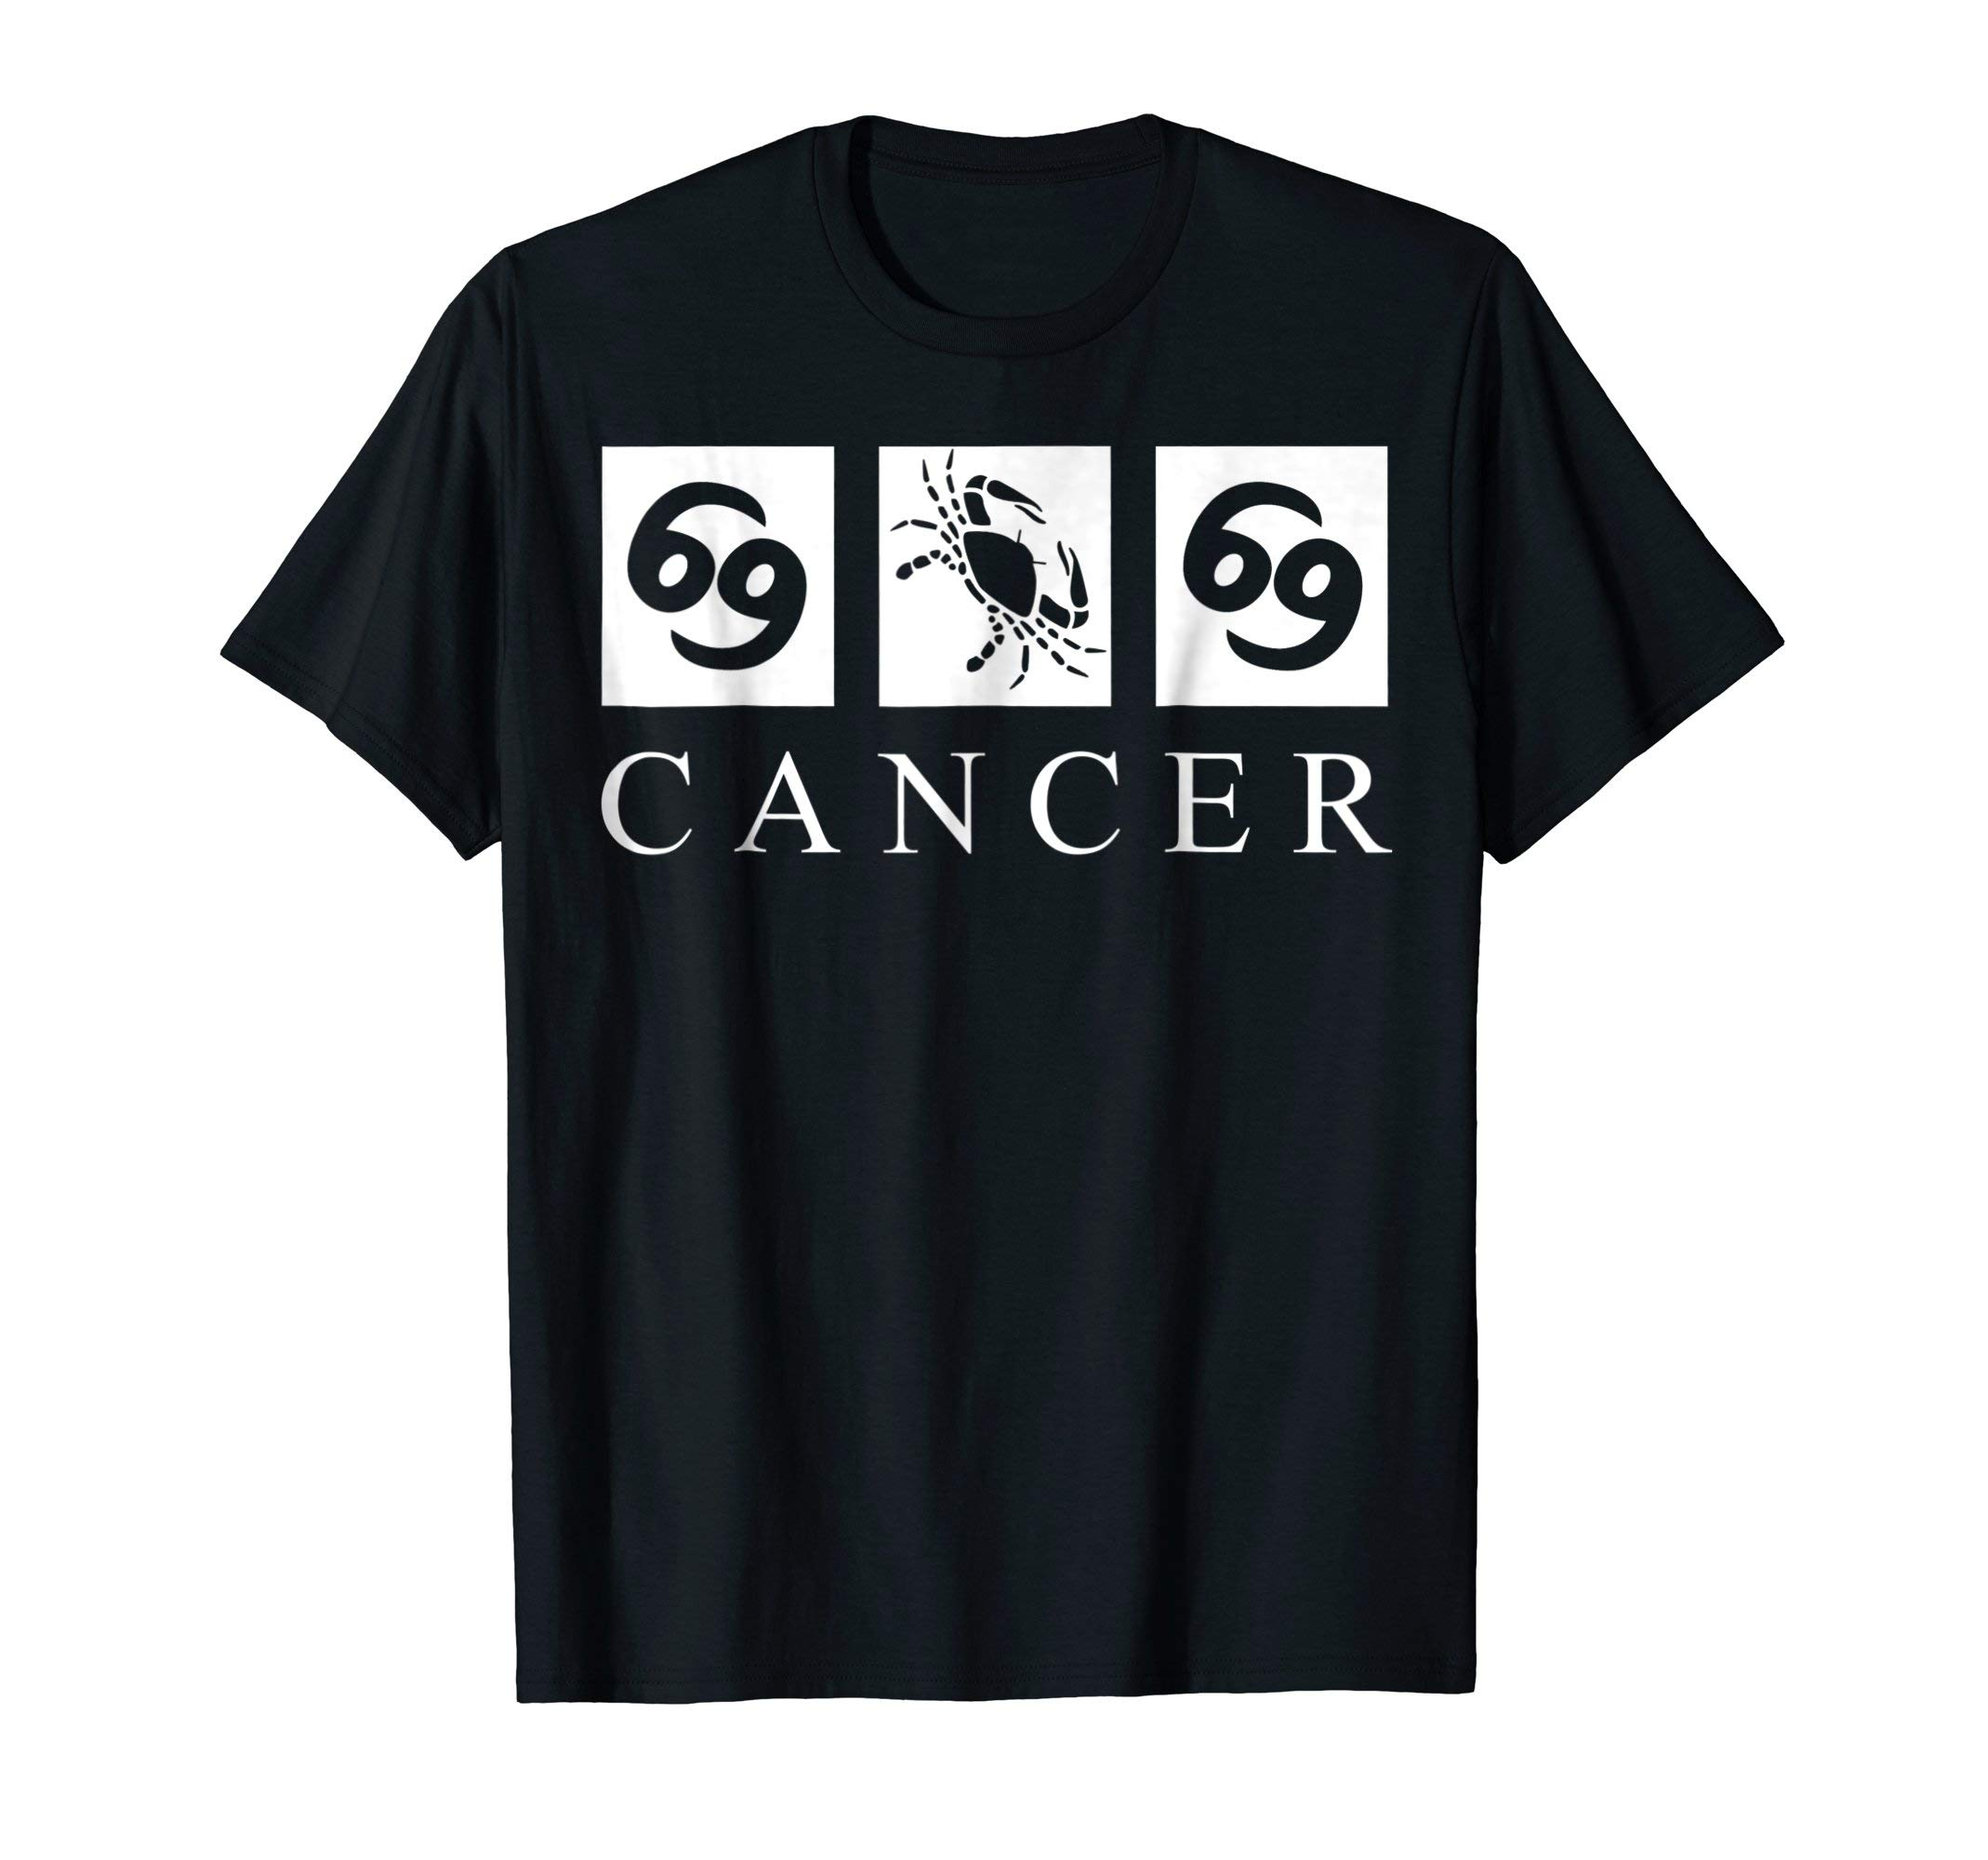 Zodiac Sign Cancer T-Shirt Funny Cancer Tees